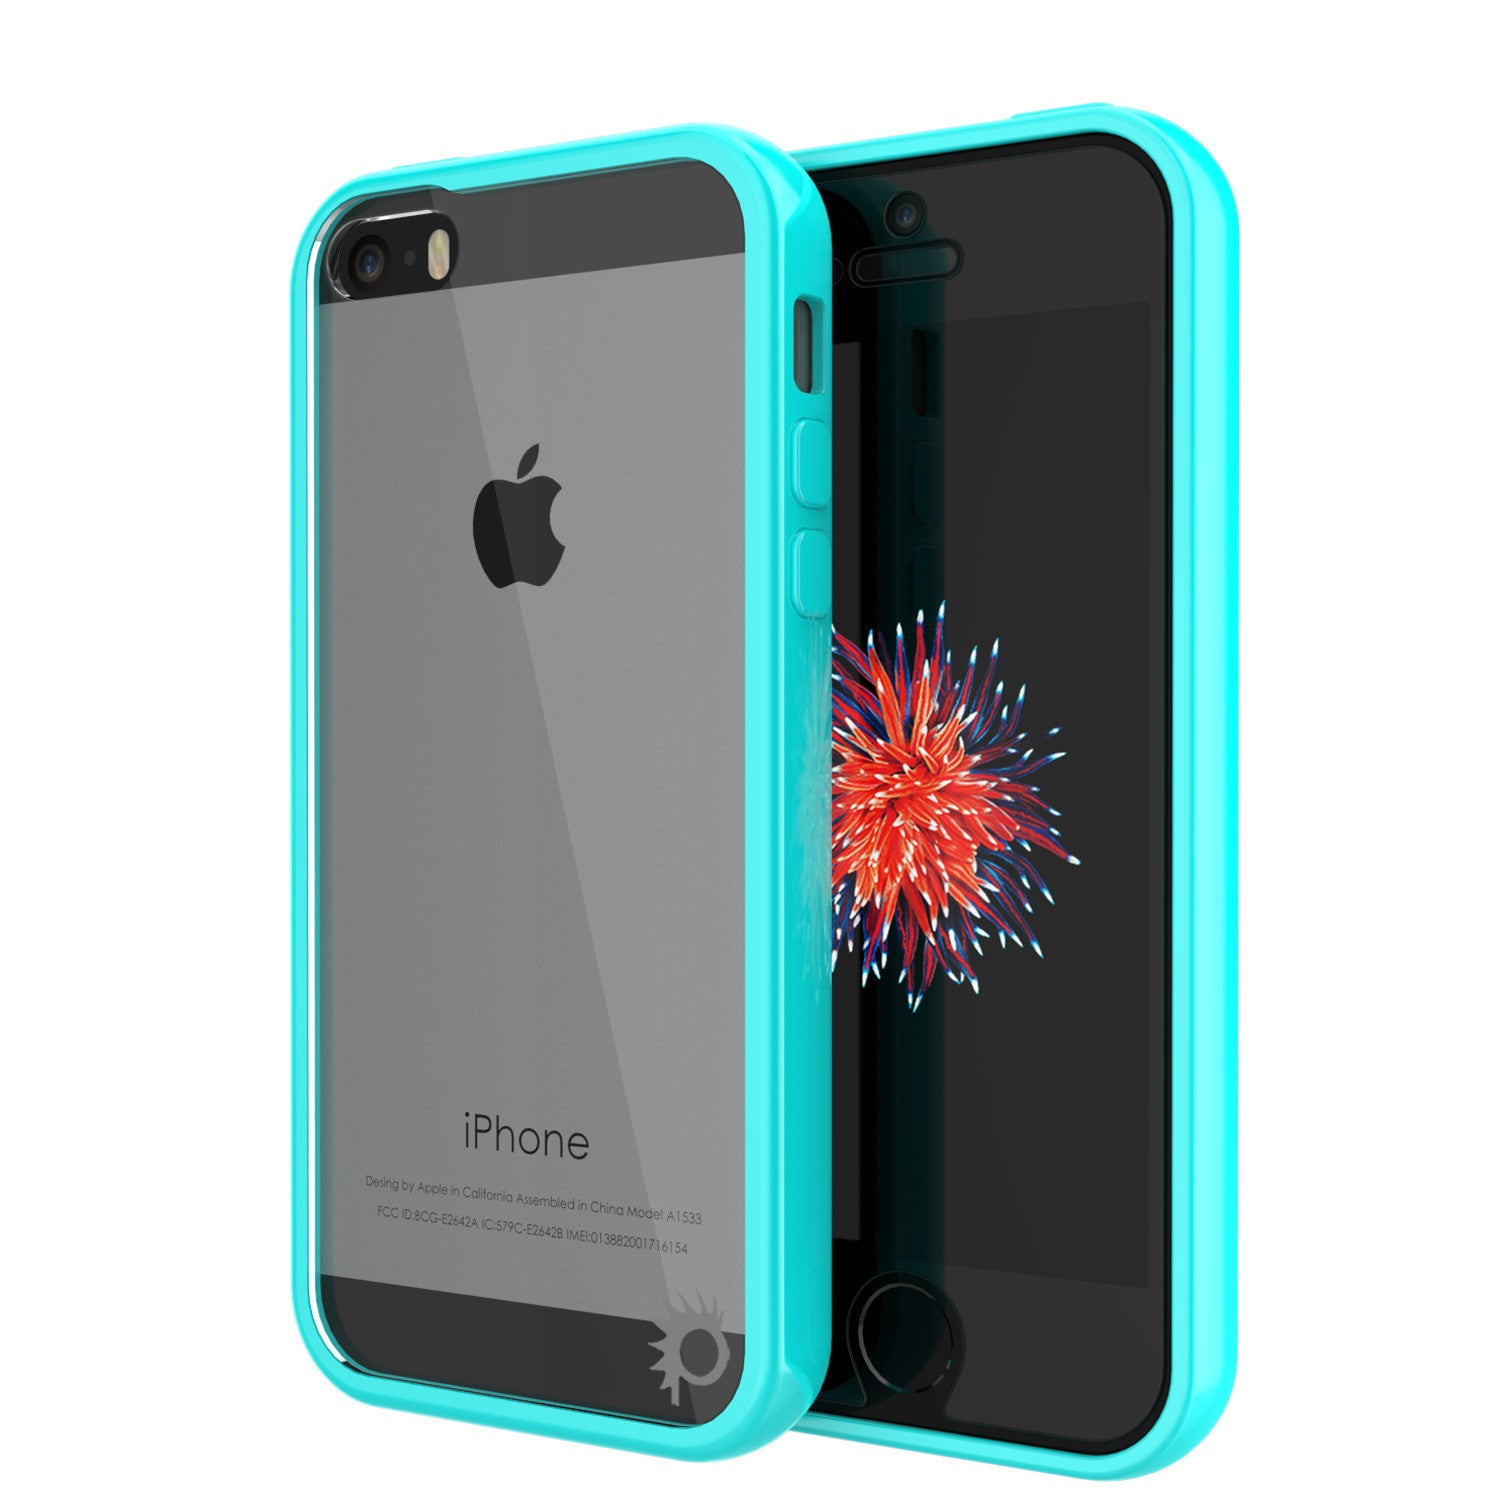 iPhone SE/5S/5 Case Punkcase® LUCID 2.0 Teal Series w/ PUNK SHIELD Screen Protector | Ultra Fit